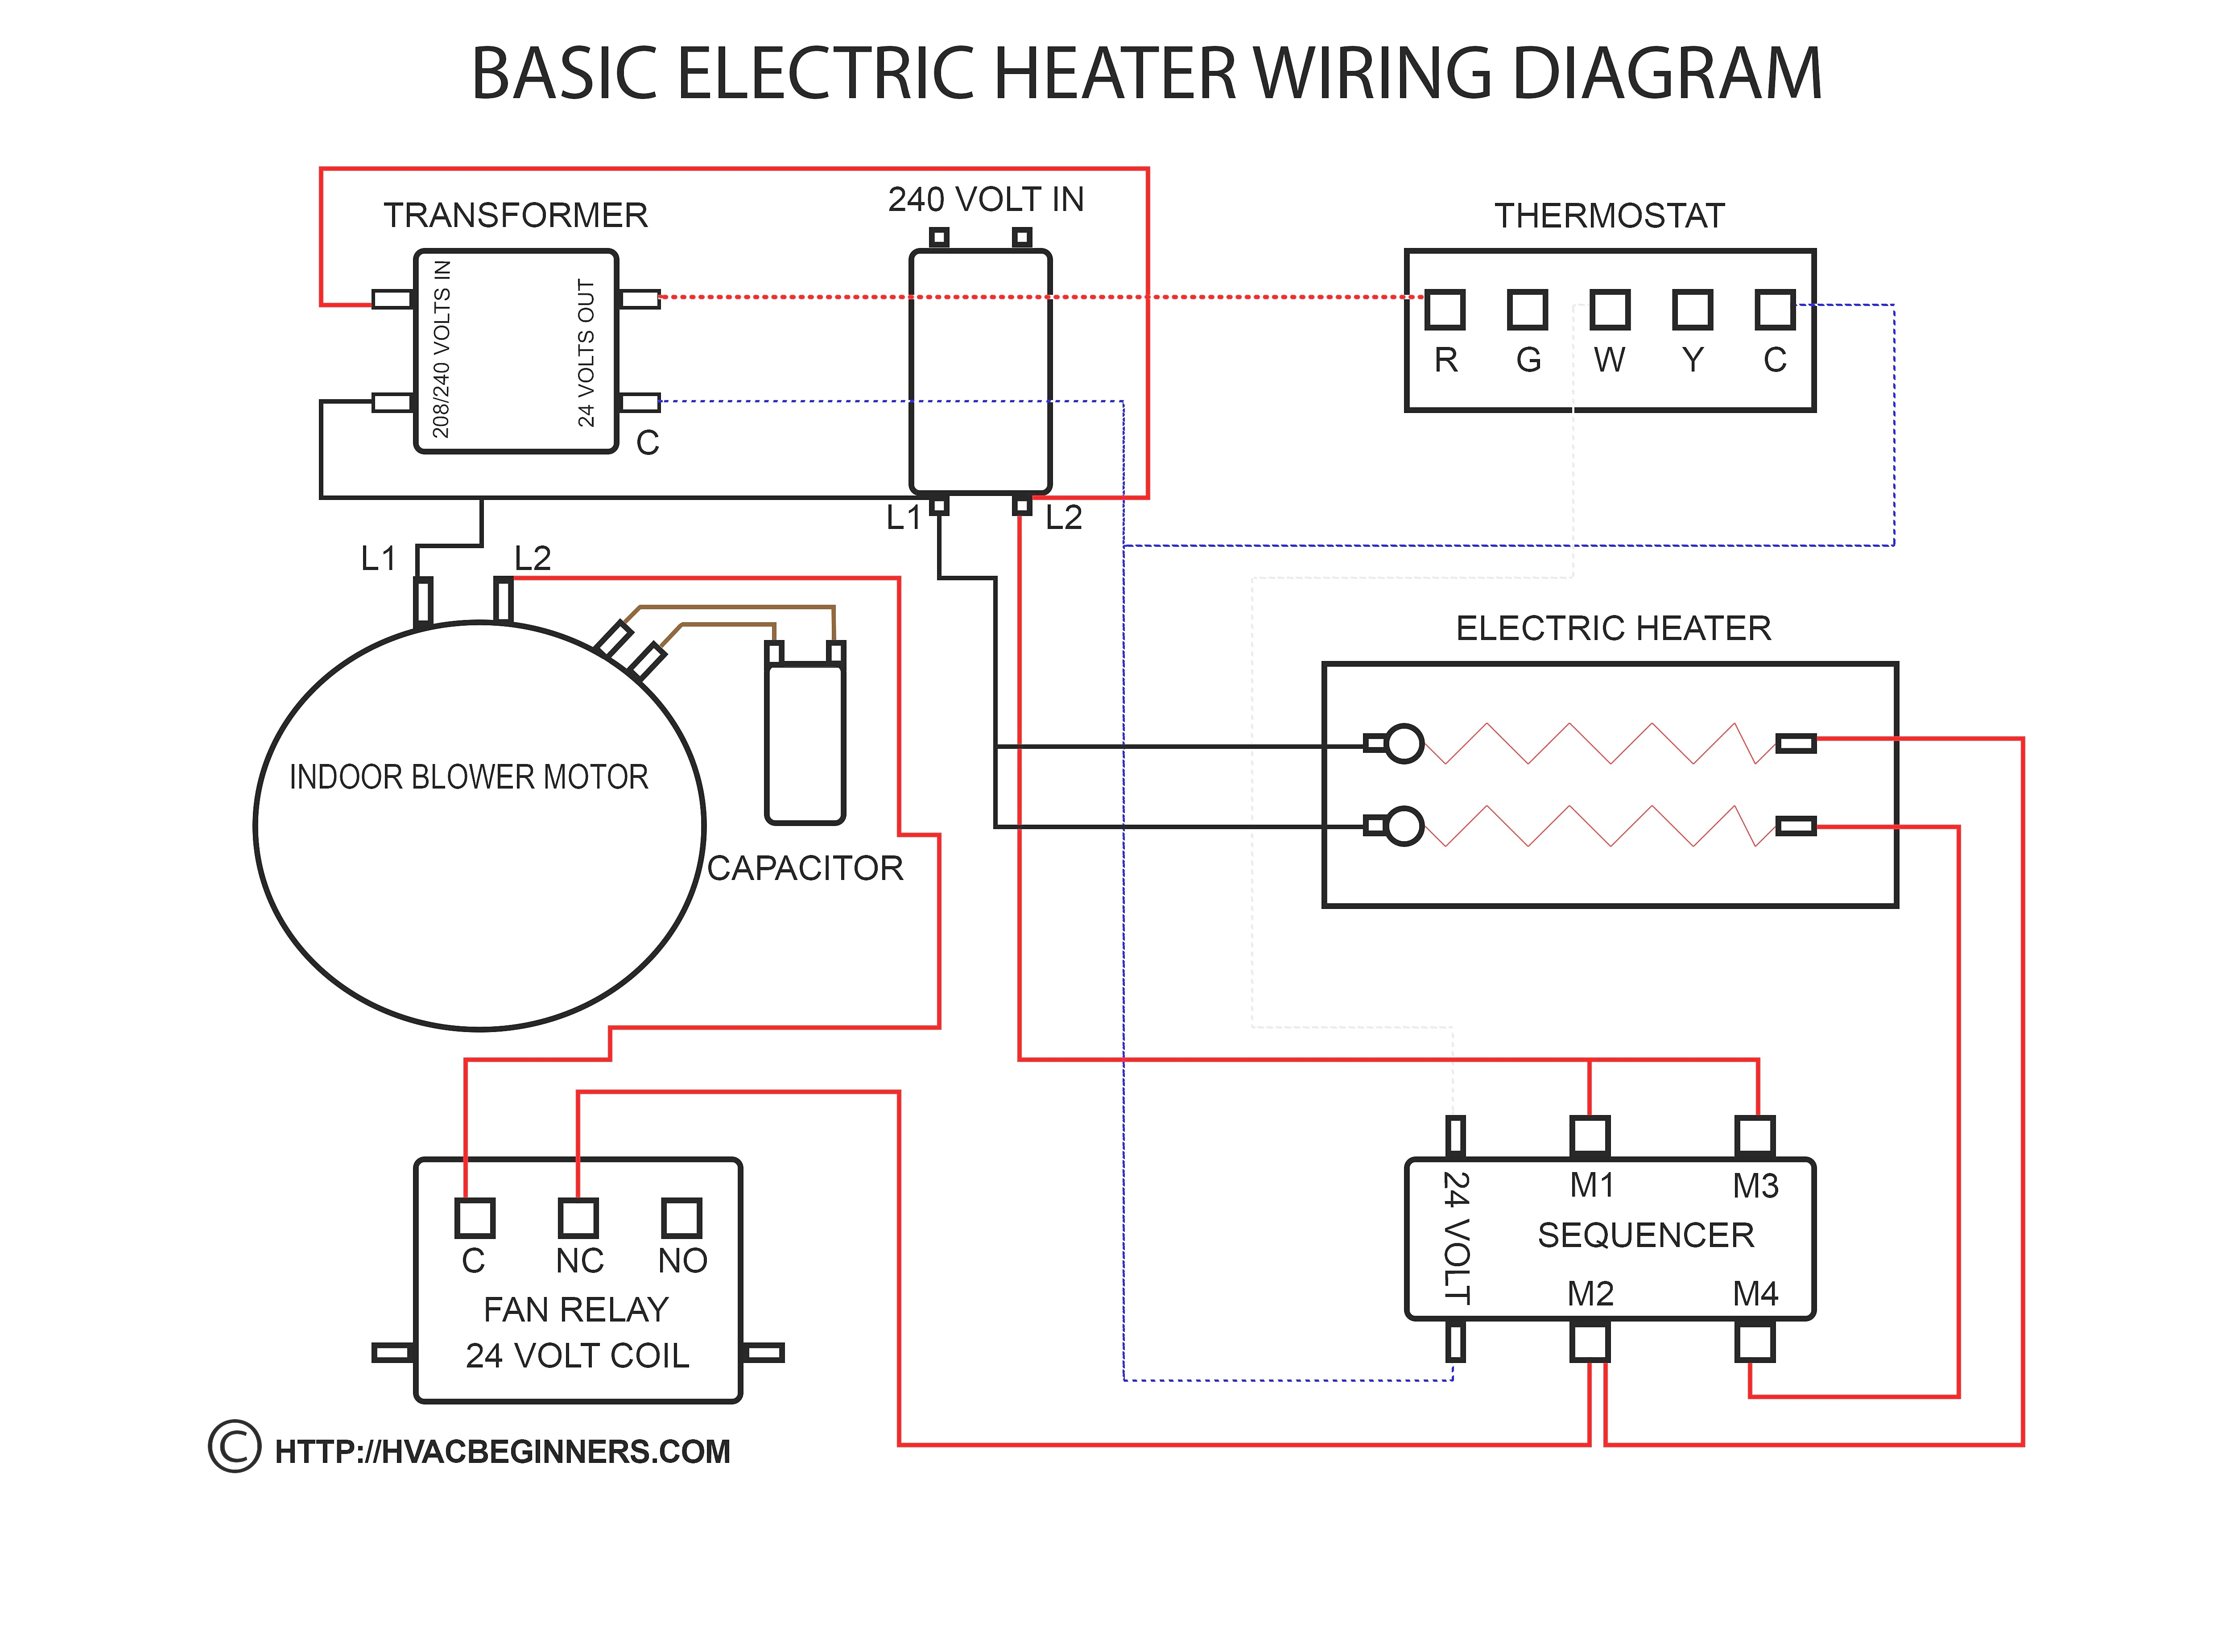 Amana Furnace Wiring Diagram - Wiring Diagrams Show on